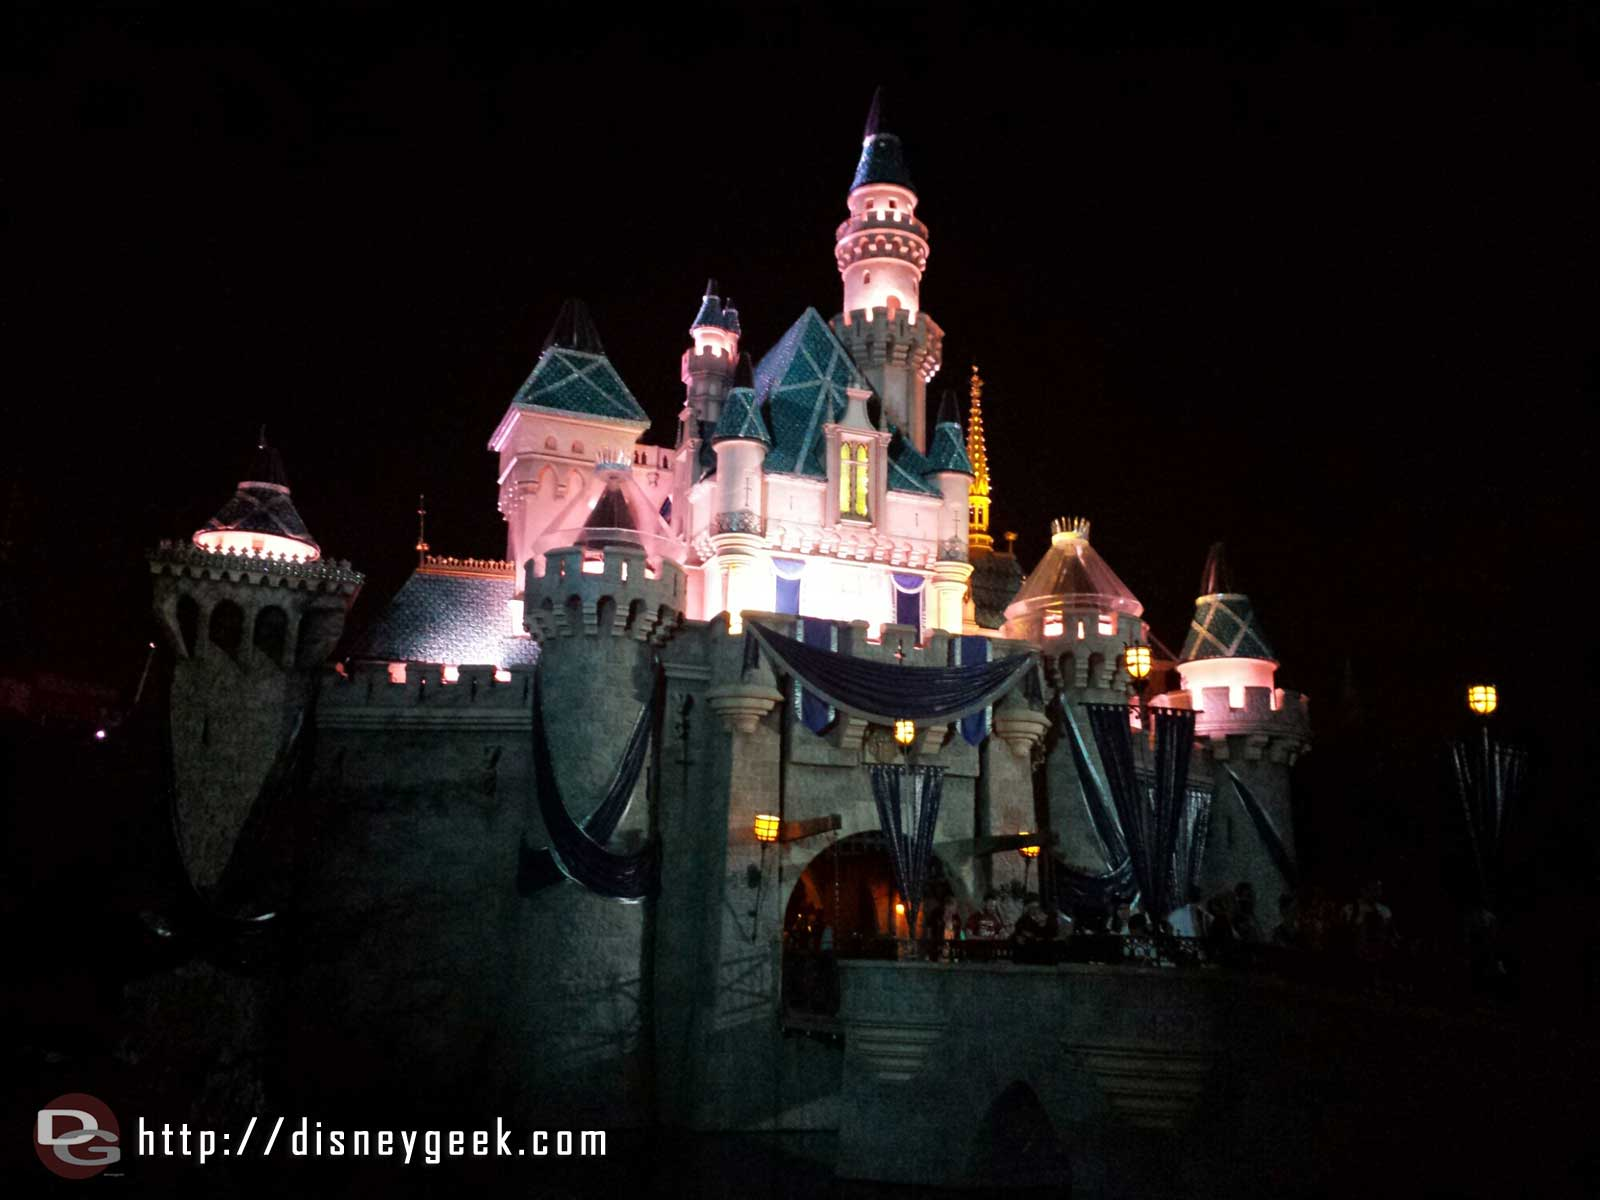 Sleeping Beauty Castle this evening  #Disneyland60